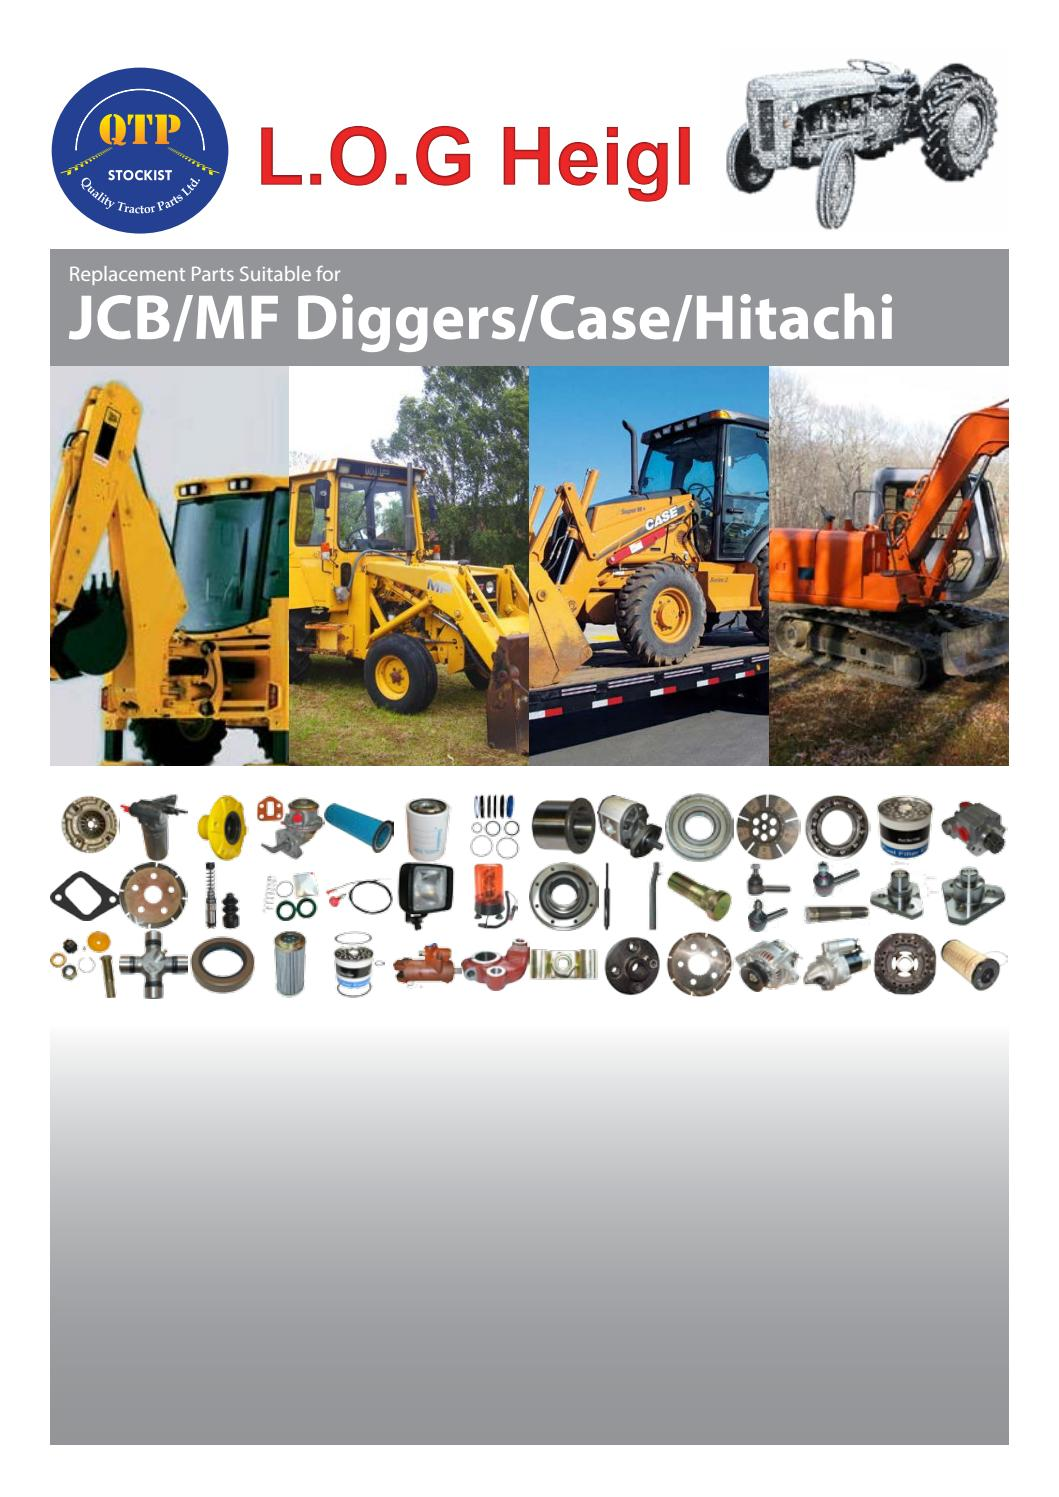 10 industrial log heigl by Quality Tractor Parts - issuu